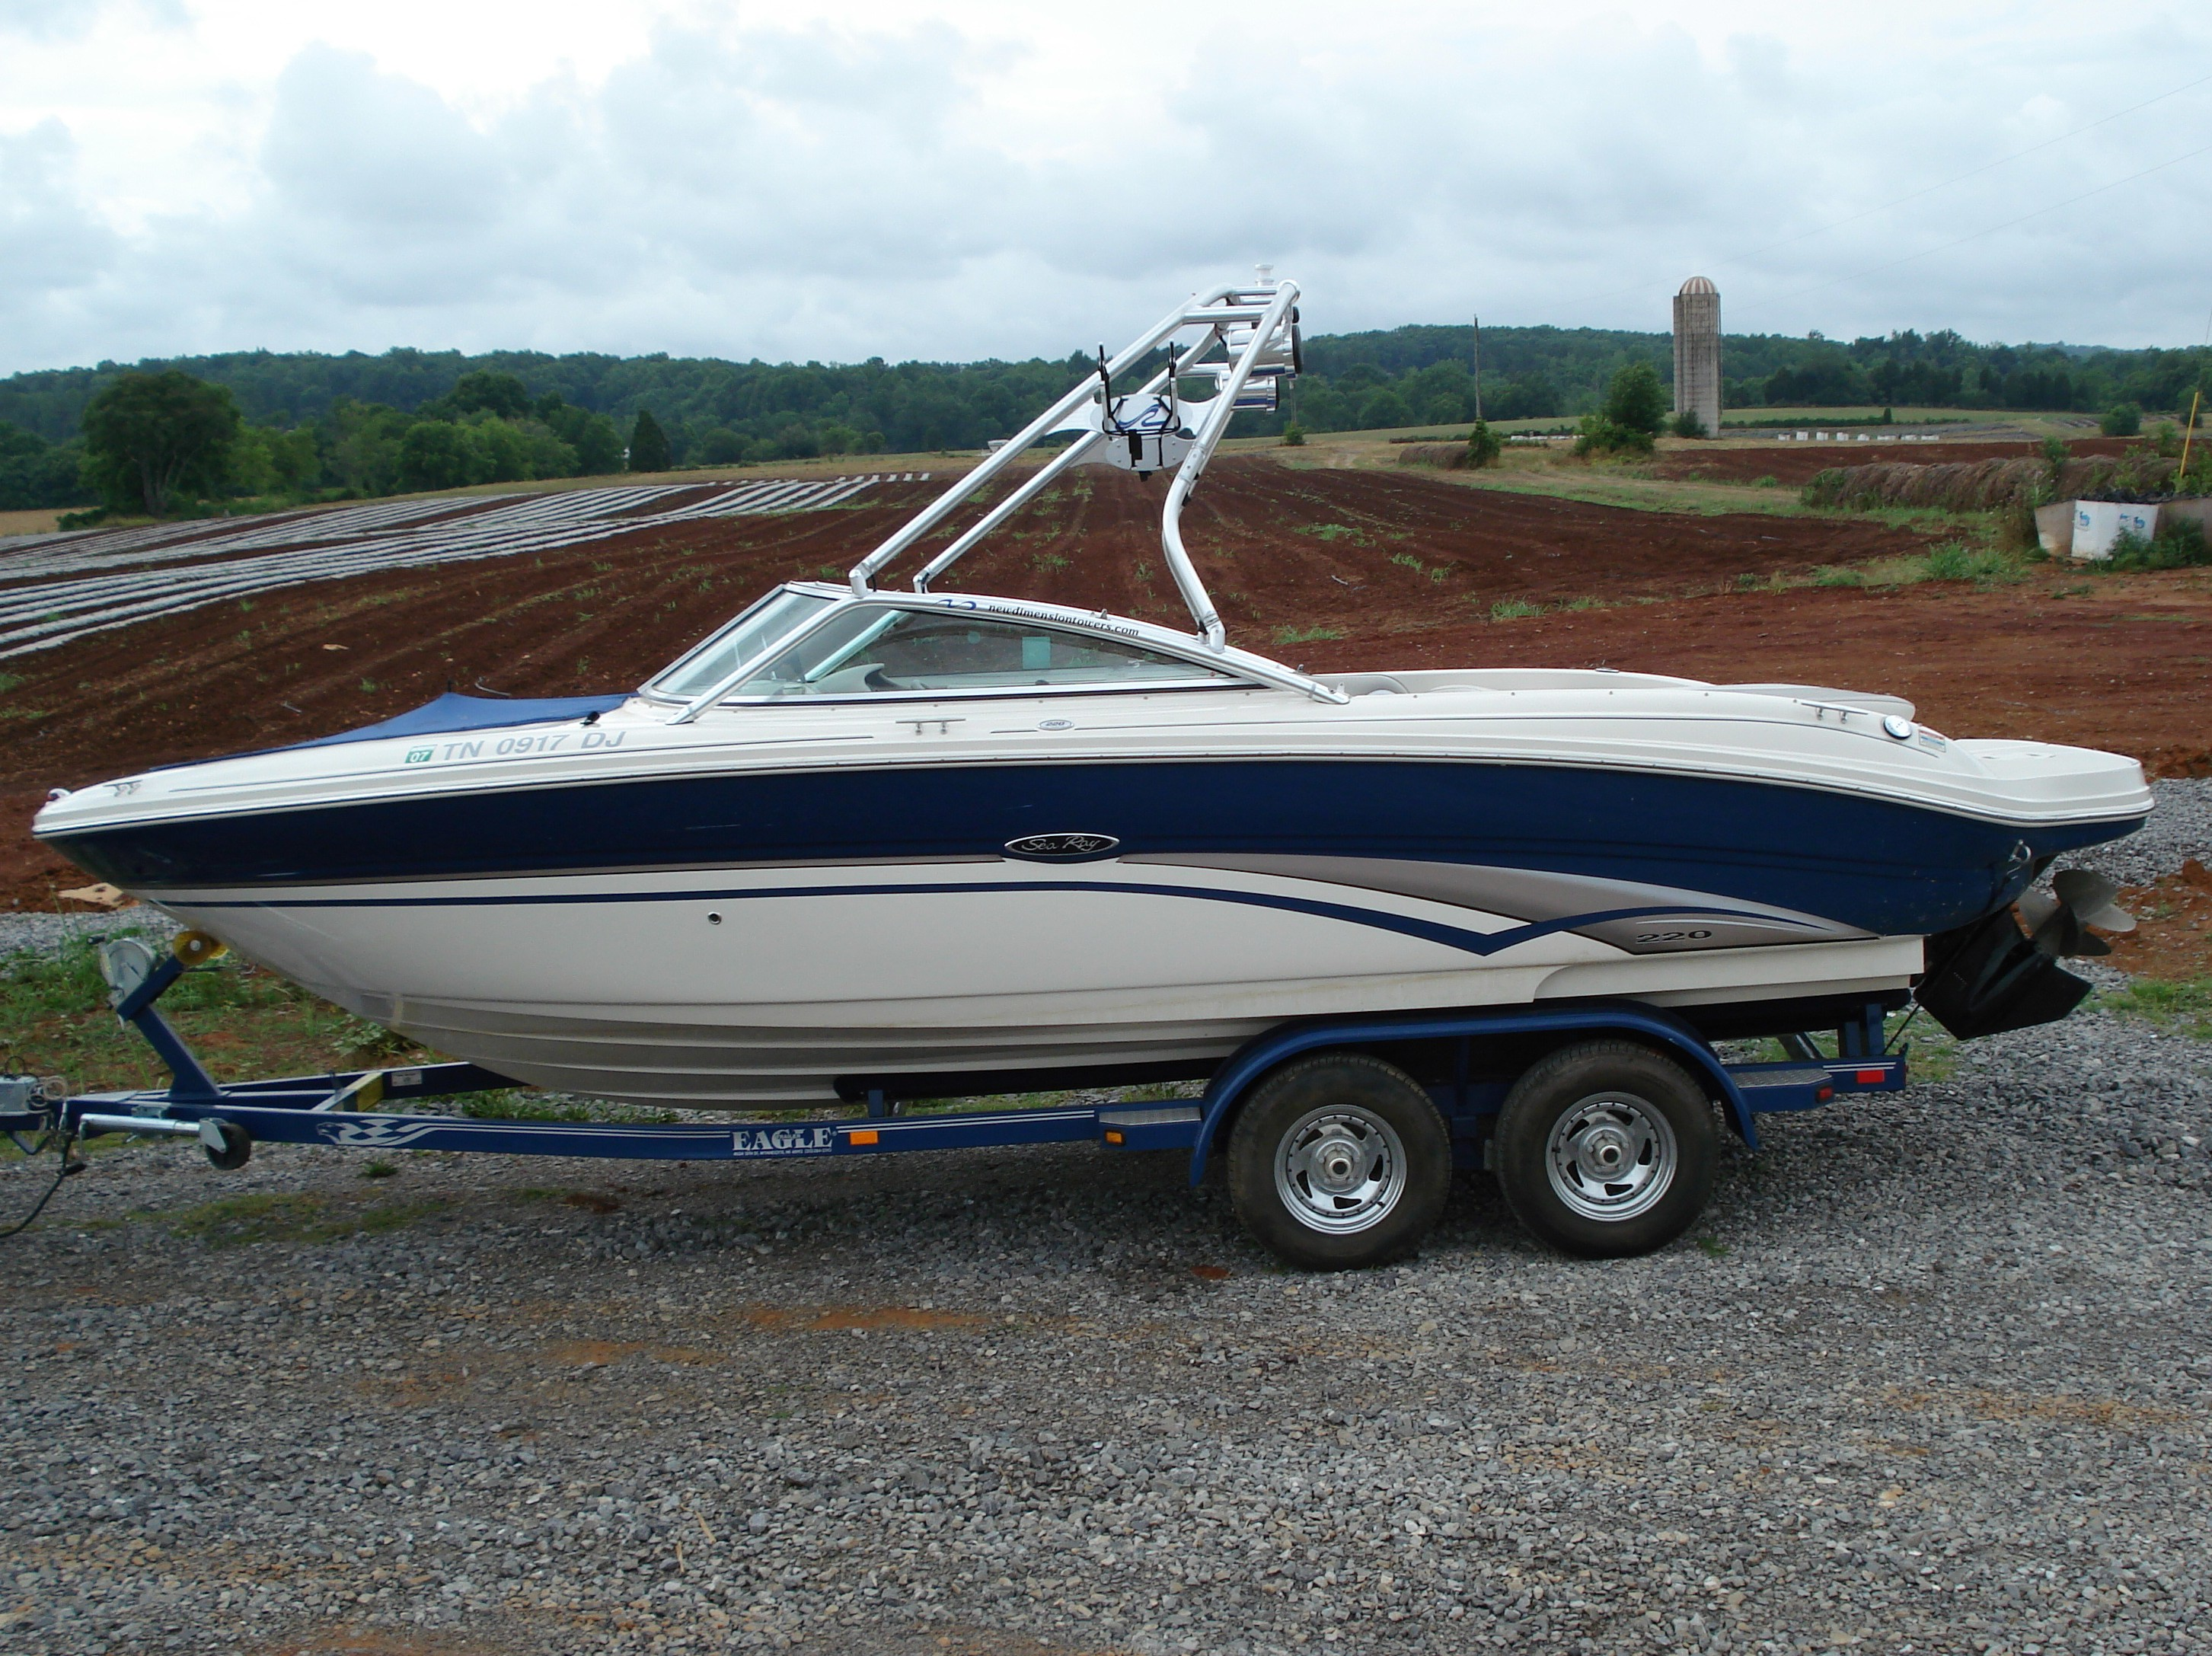 main image of 02 - 03 sea ray 220 bowrider with new dimension tower